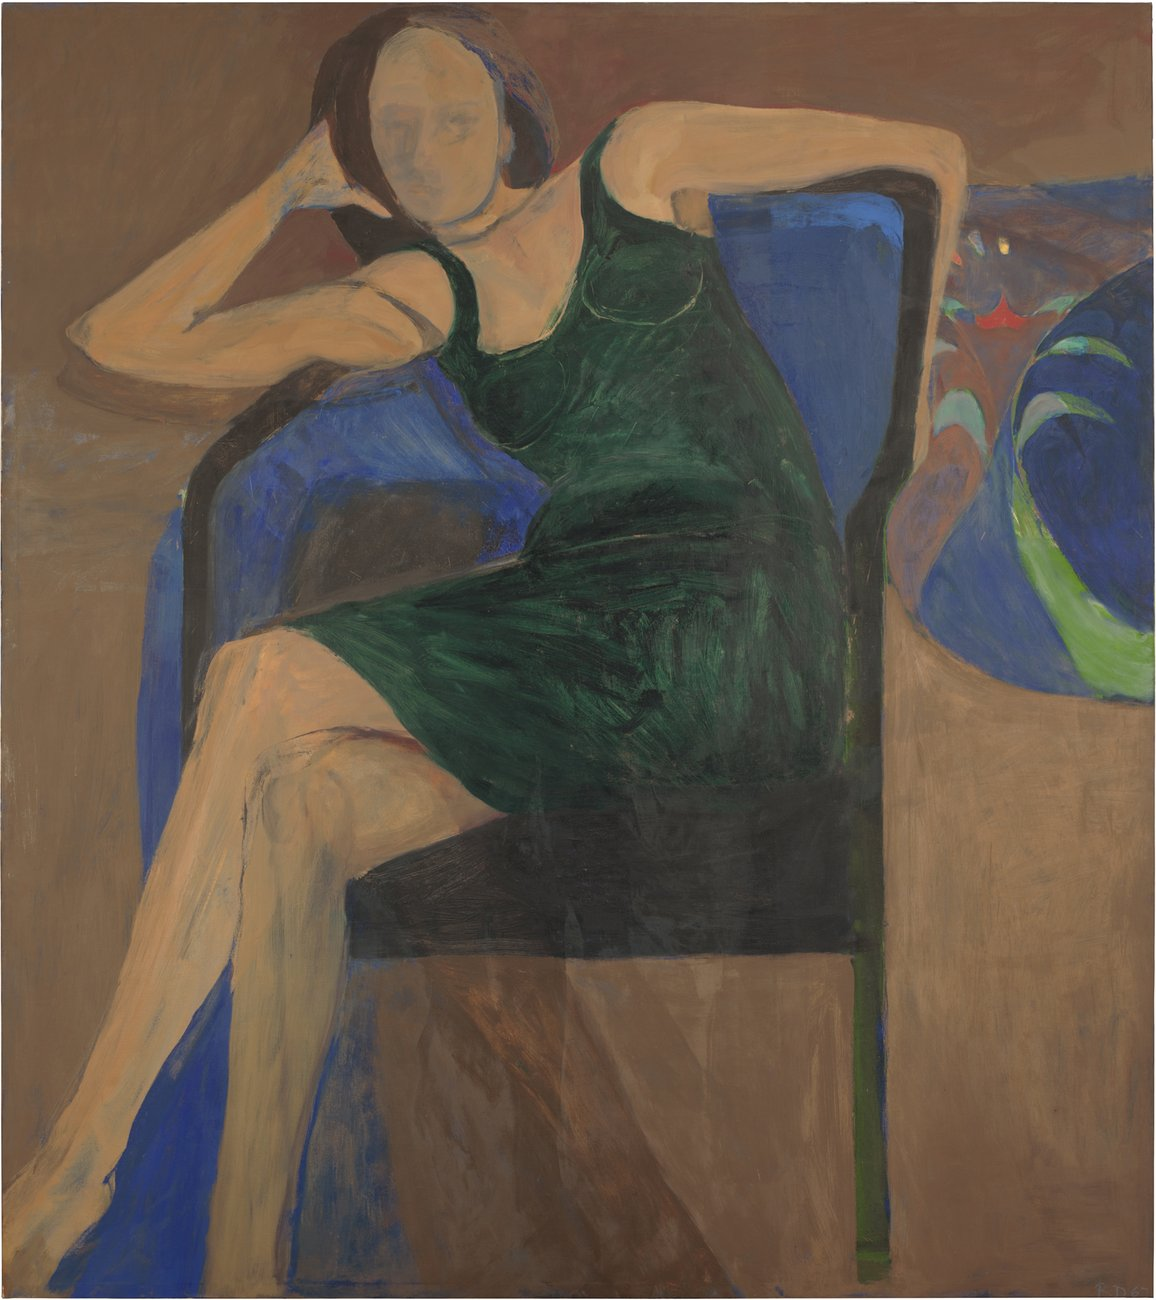 Artwork image, Richard Diebenkorn's Seated Woman